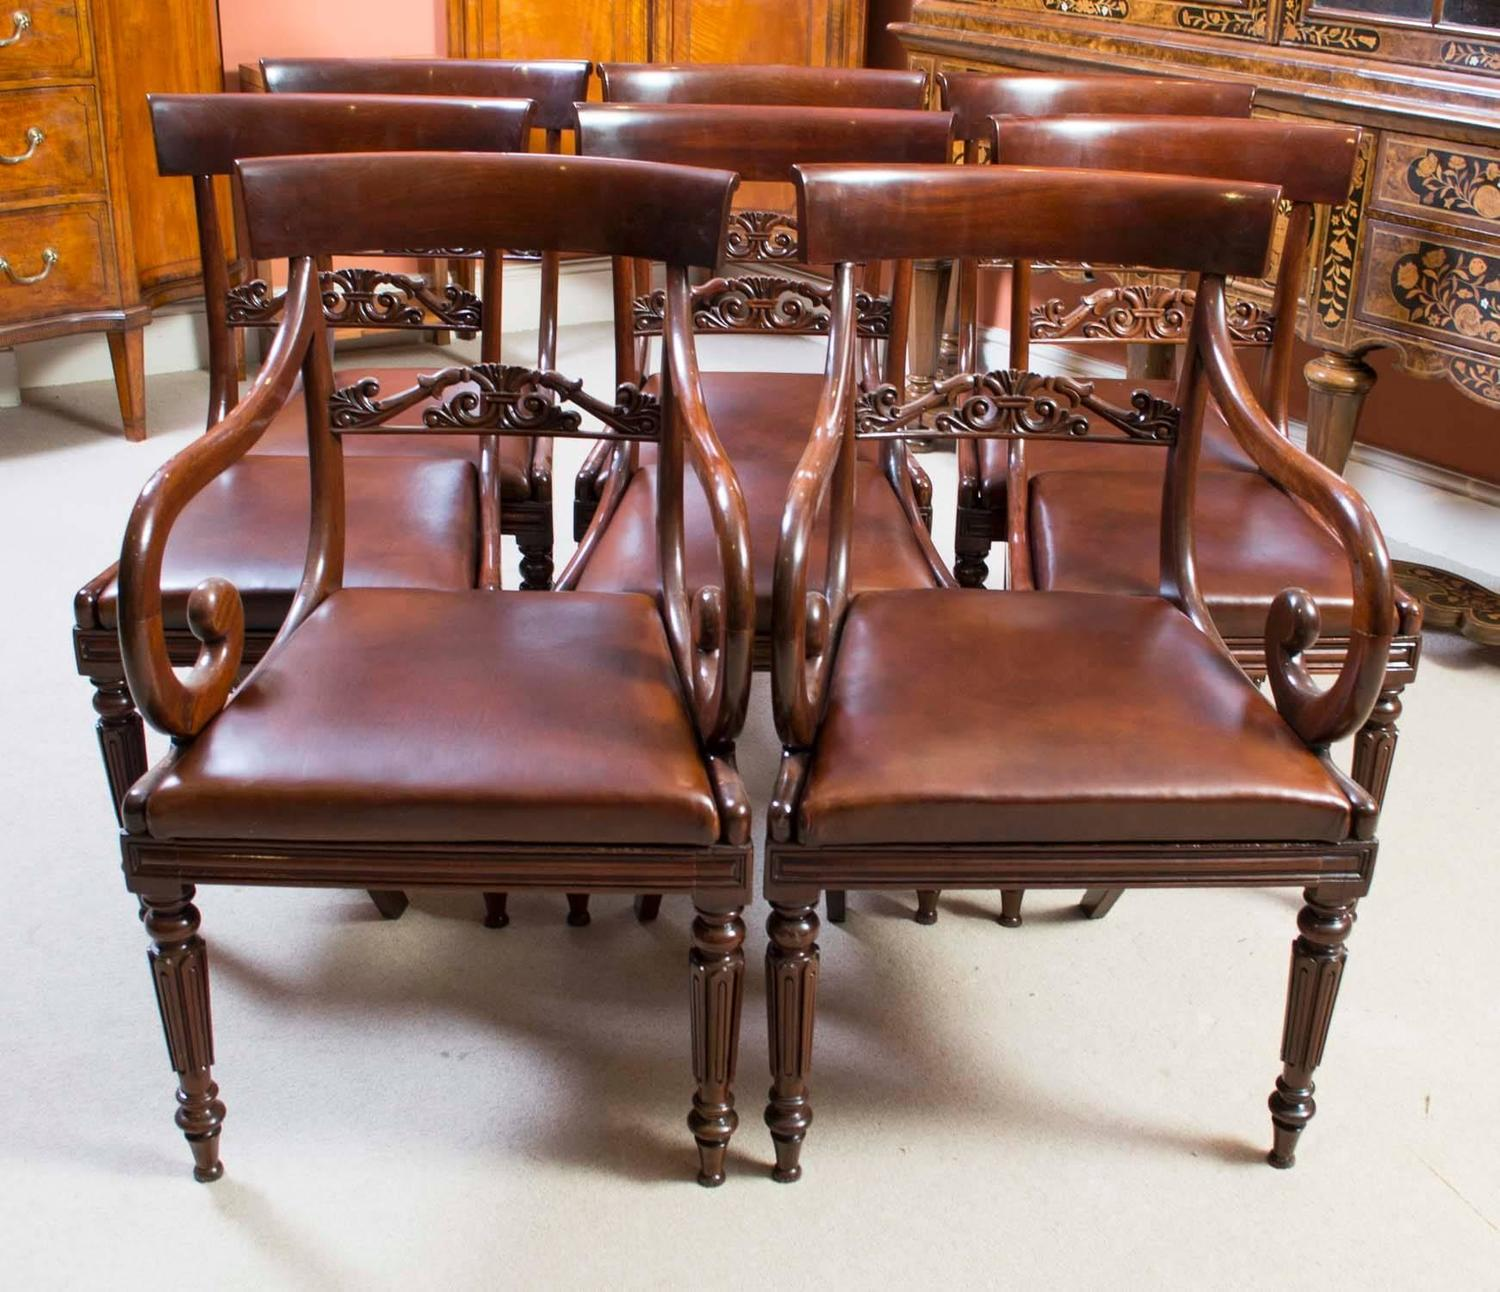 Antique Regency Gillows Dining Table Eight Regency Chairs At 1stdibs